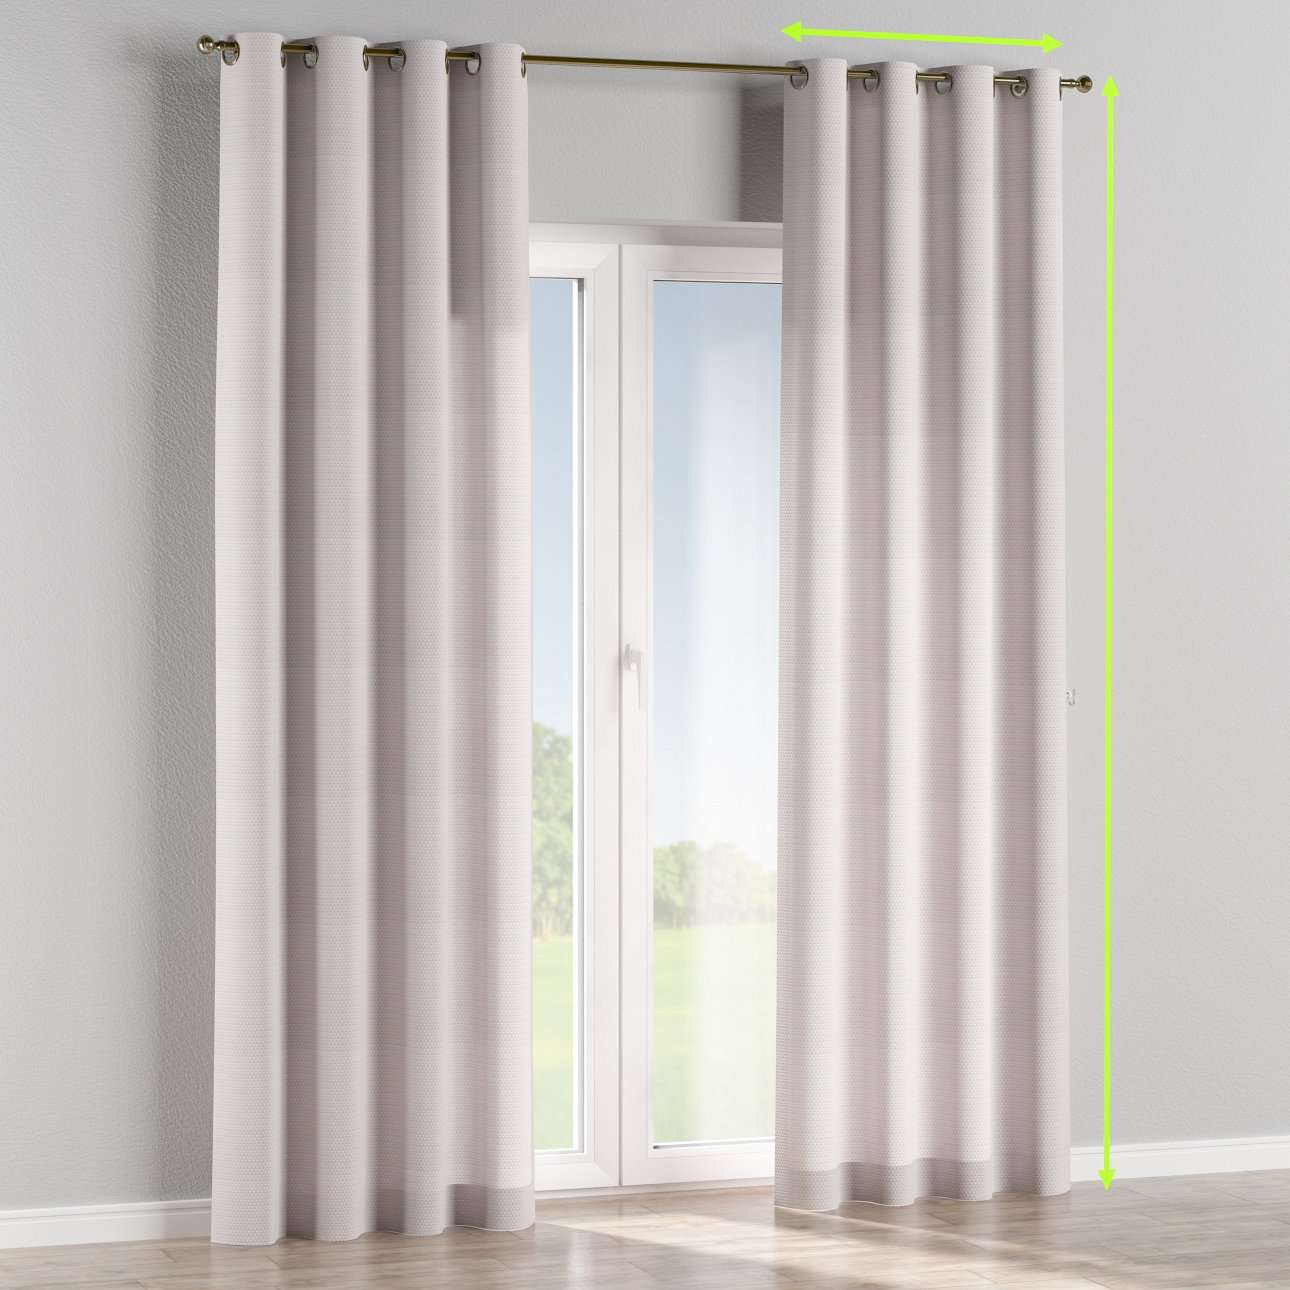 Eyelet lined curtains in collection Rustica, fabric: 140-28